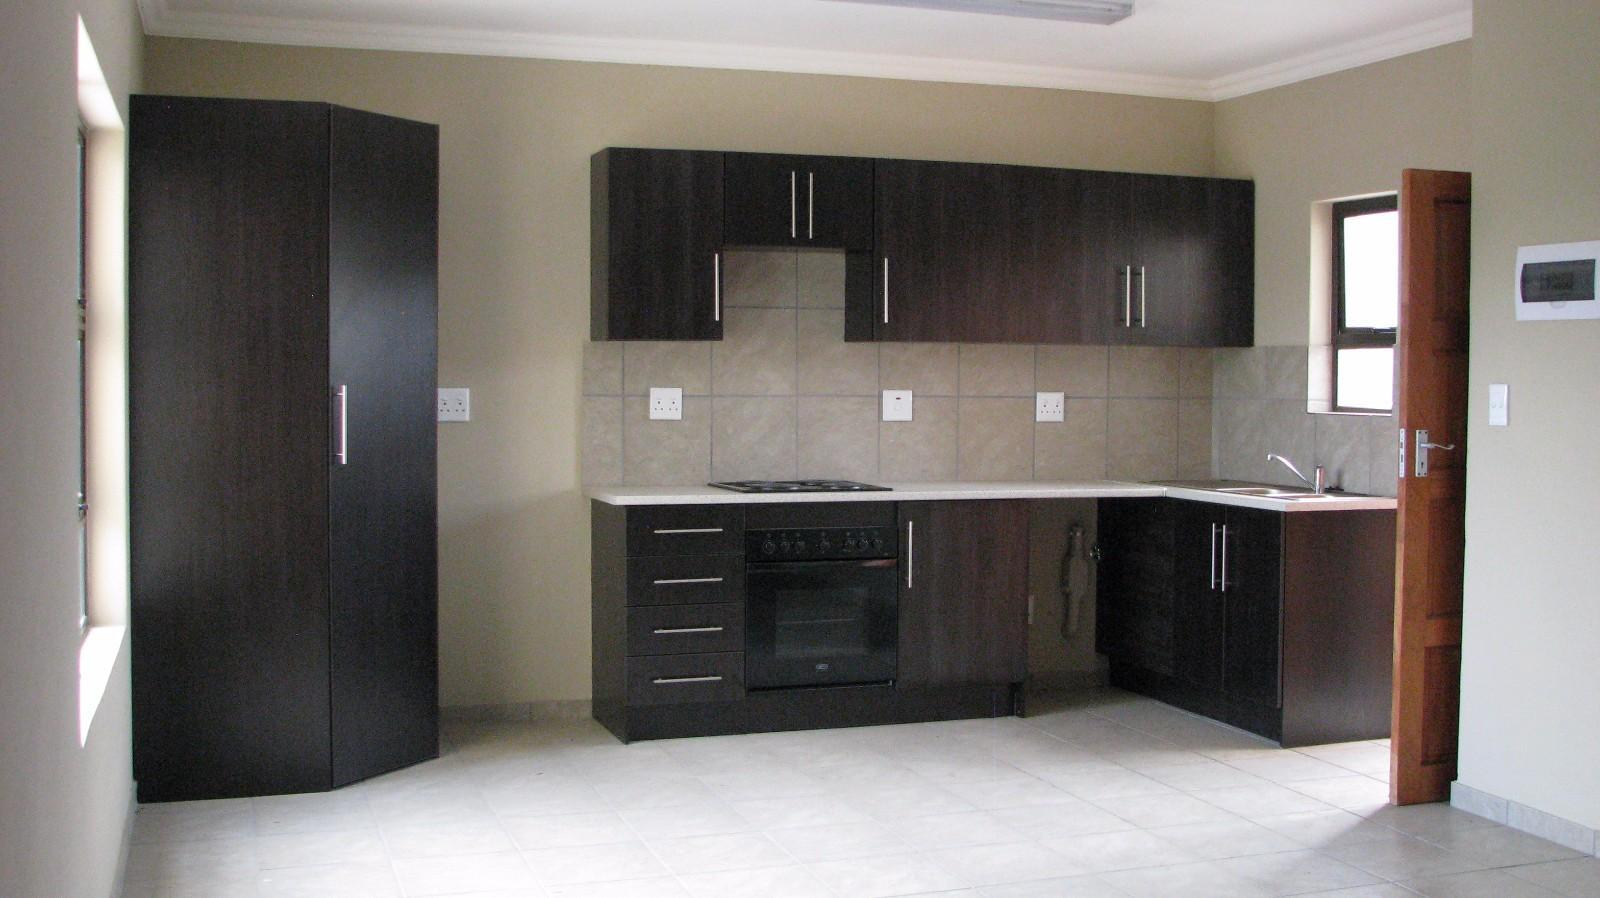 Apartment in Melodie - Open plan, lounge, dining and kitchen